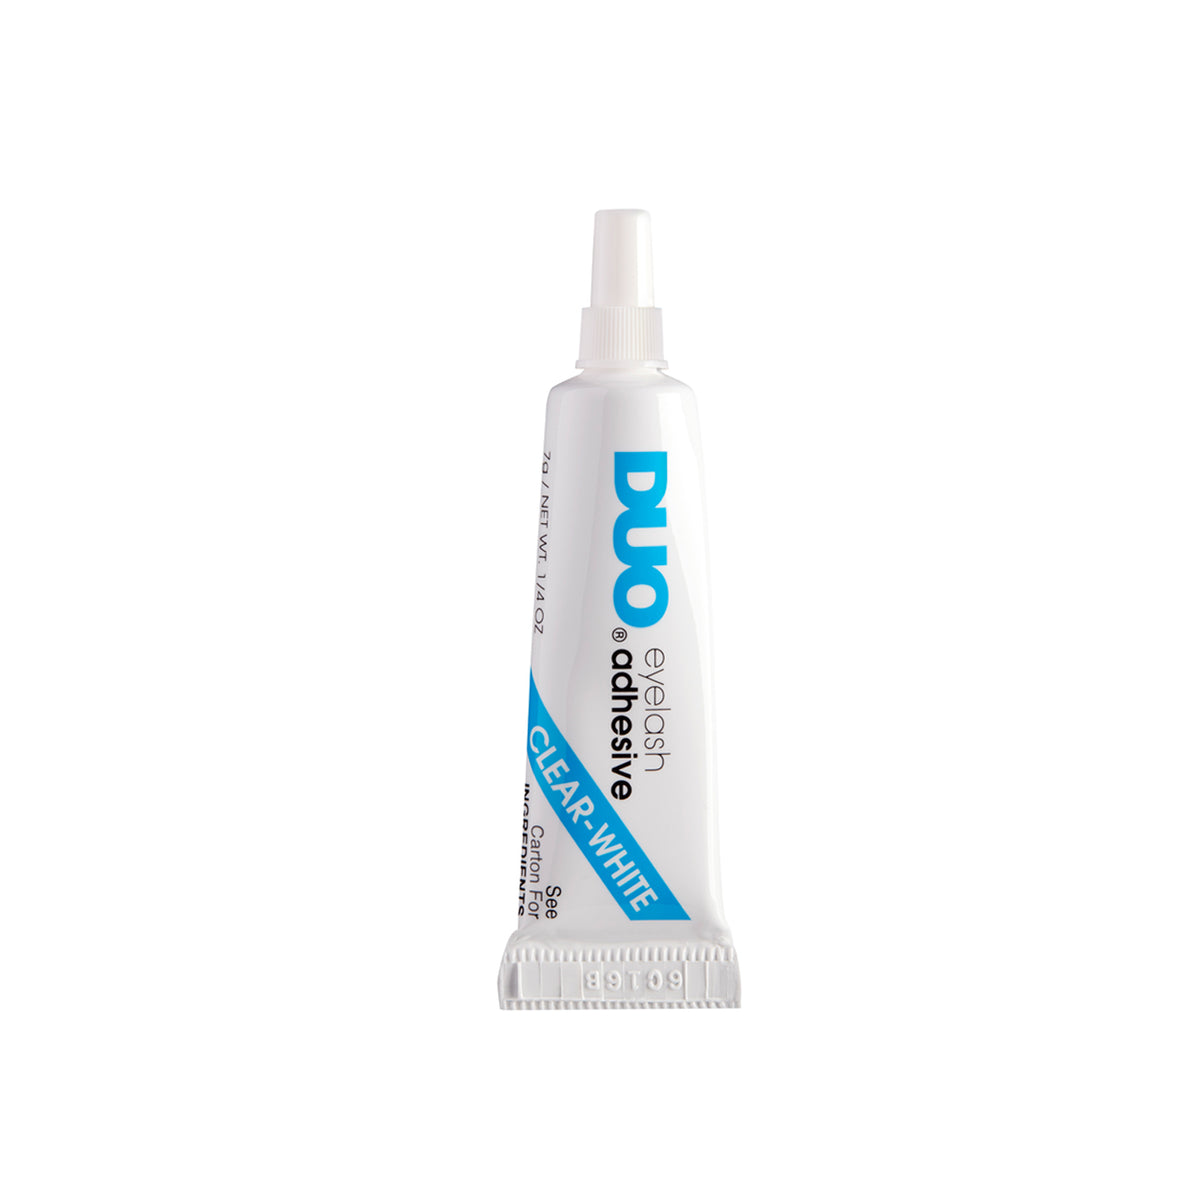 DUO Strip Lash Adhesive Clear-White